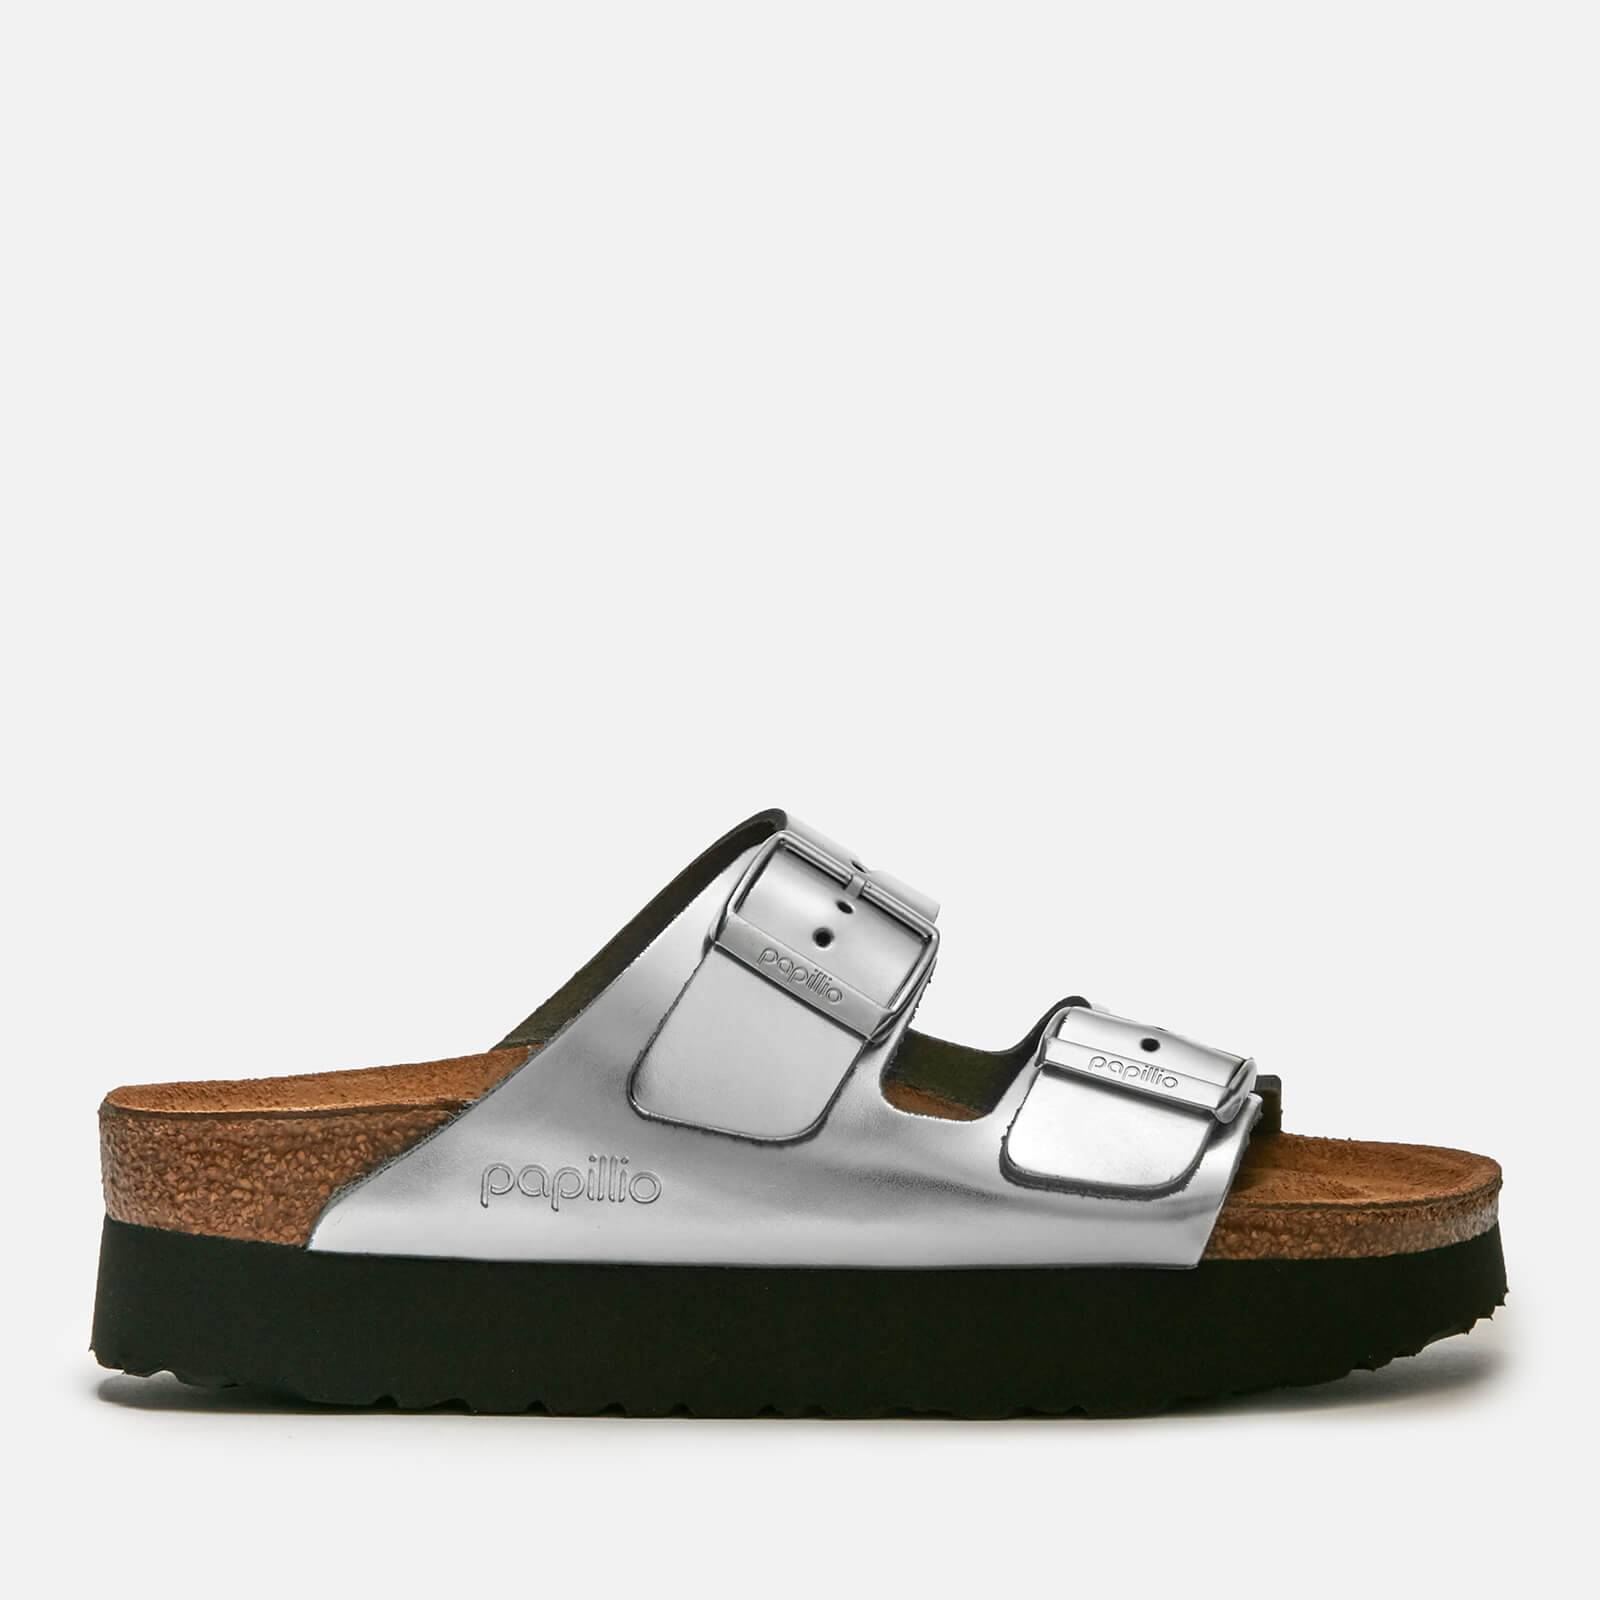 Birkenstock Papillio Women's Arizona Metallic Platform Double Strap Sandals - Silver - UK 4.5 - Silver